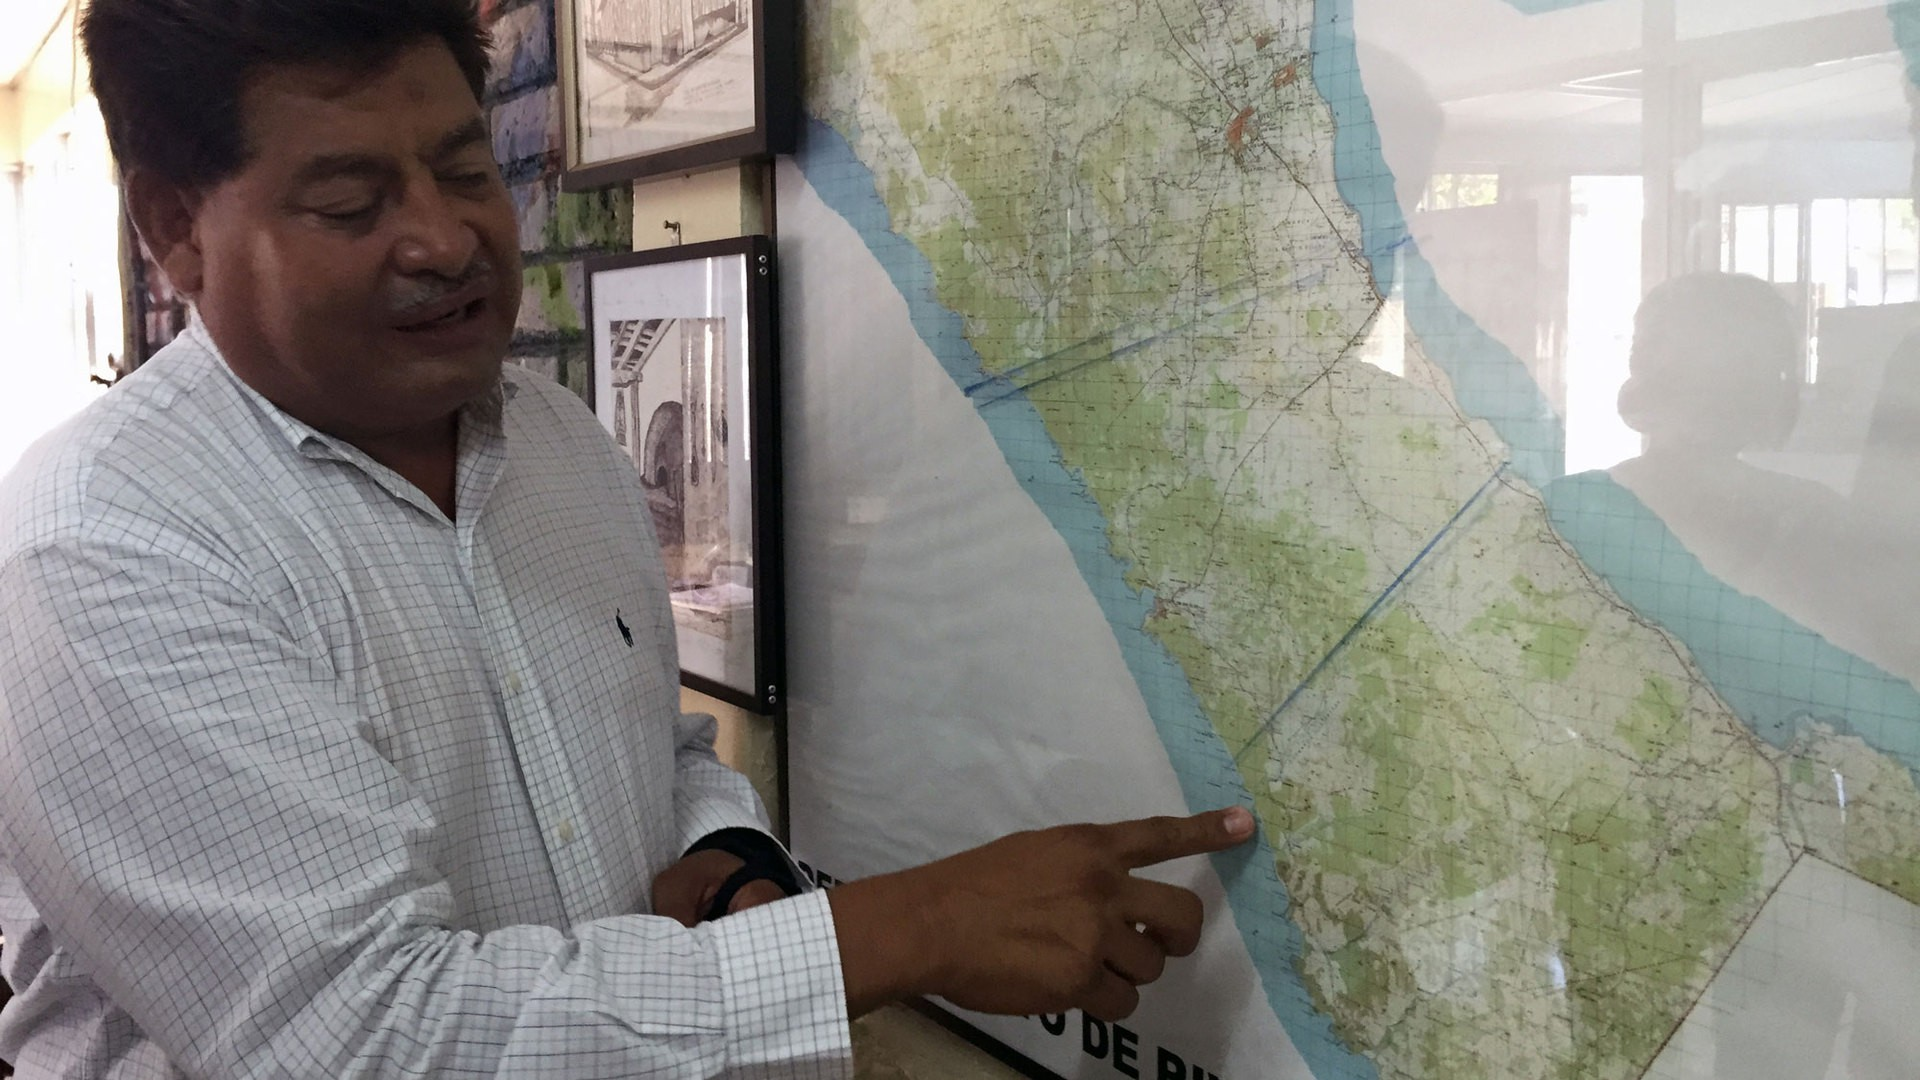 Ortega points at proposed canal routes on a map of Nicaragua. (Photo by Miguel Otárola)